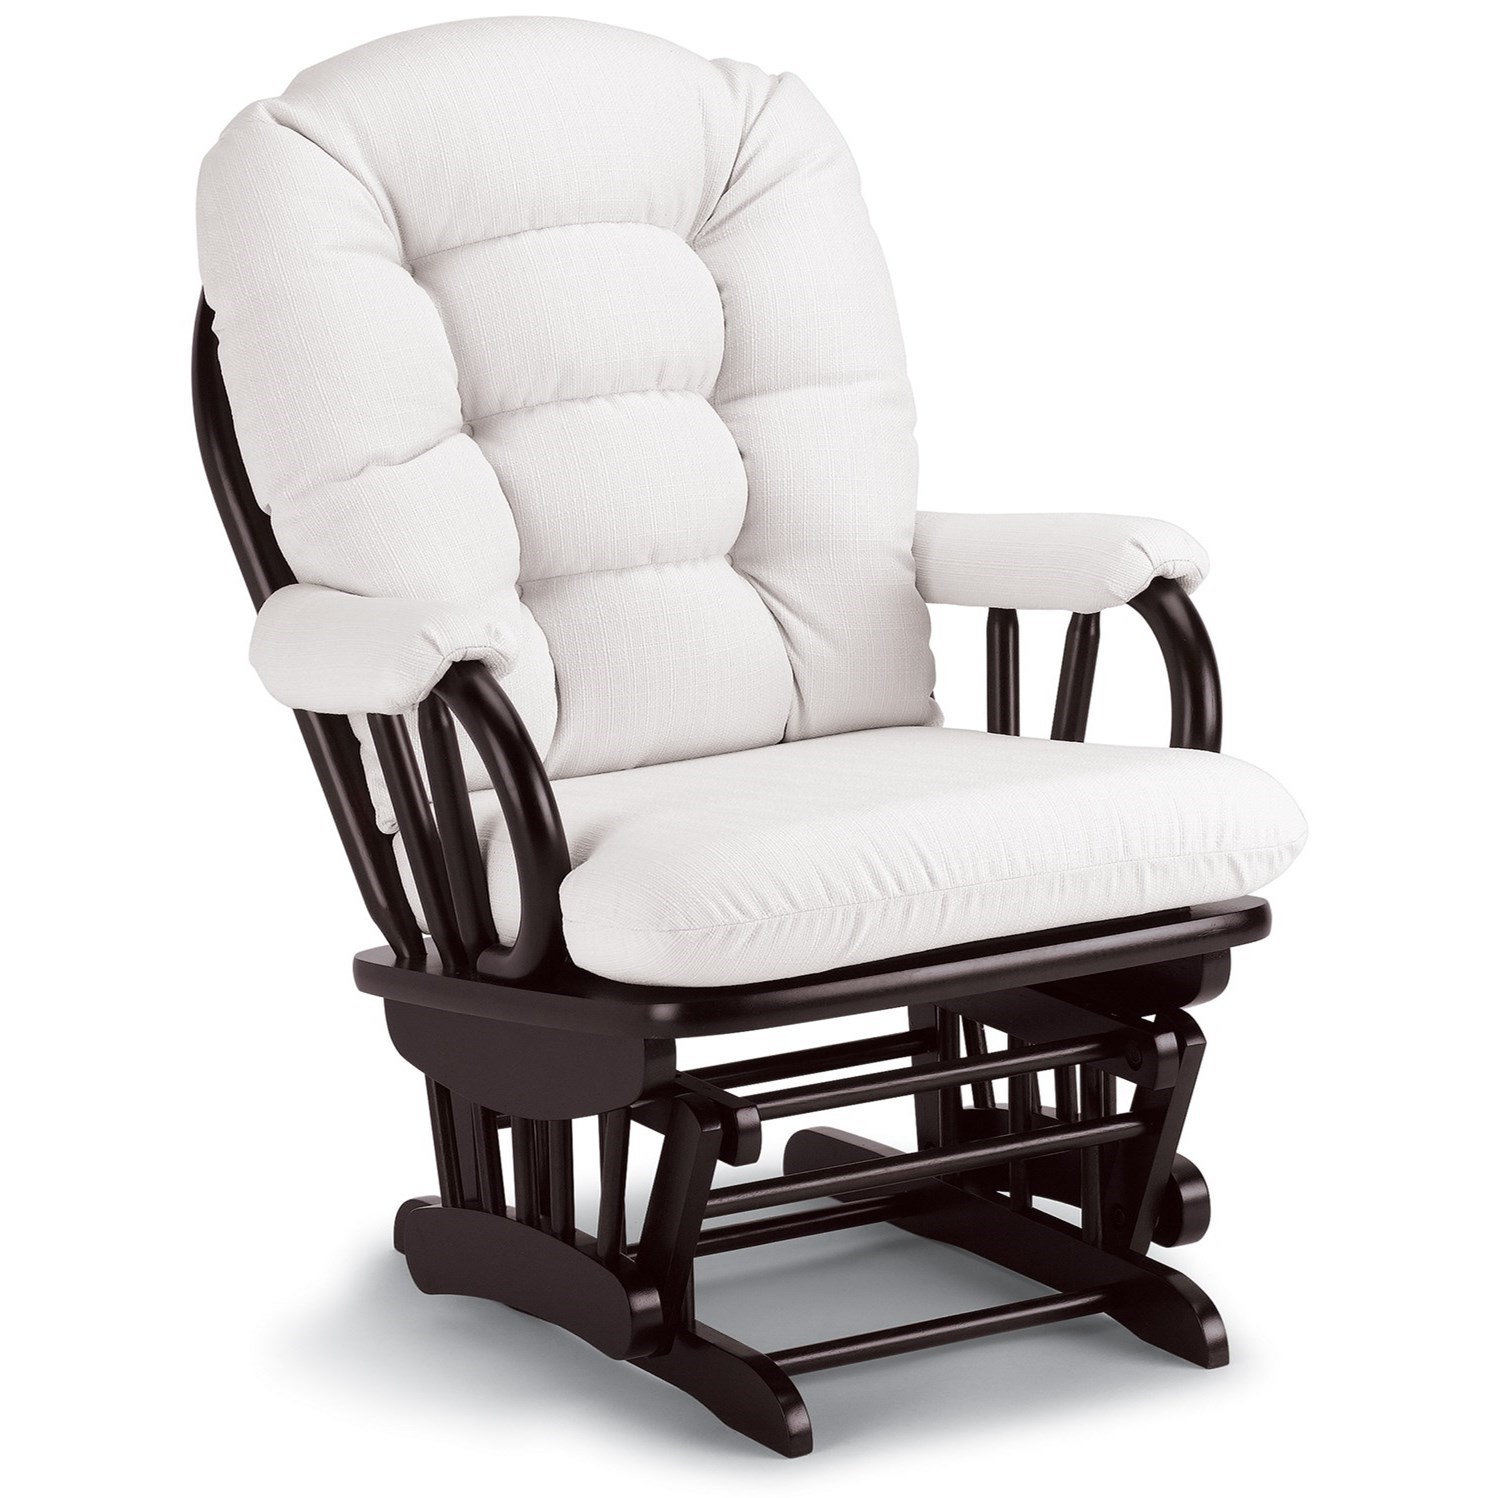 Sona Glider Rocker by Best Home Furnishings at Best Home Furnishings